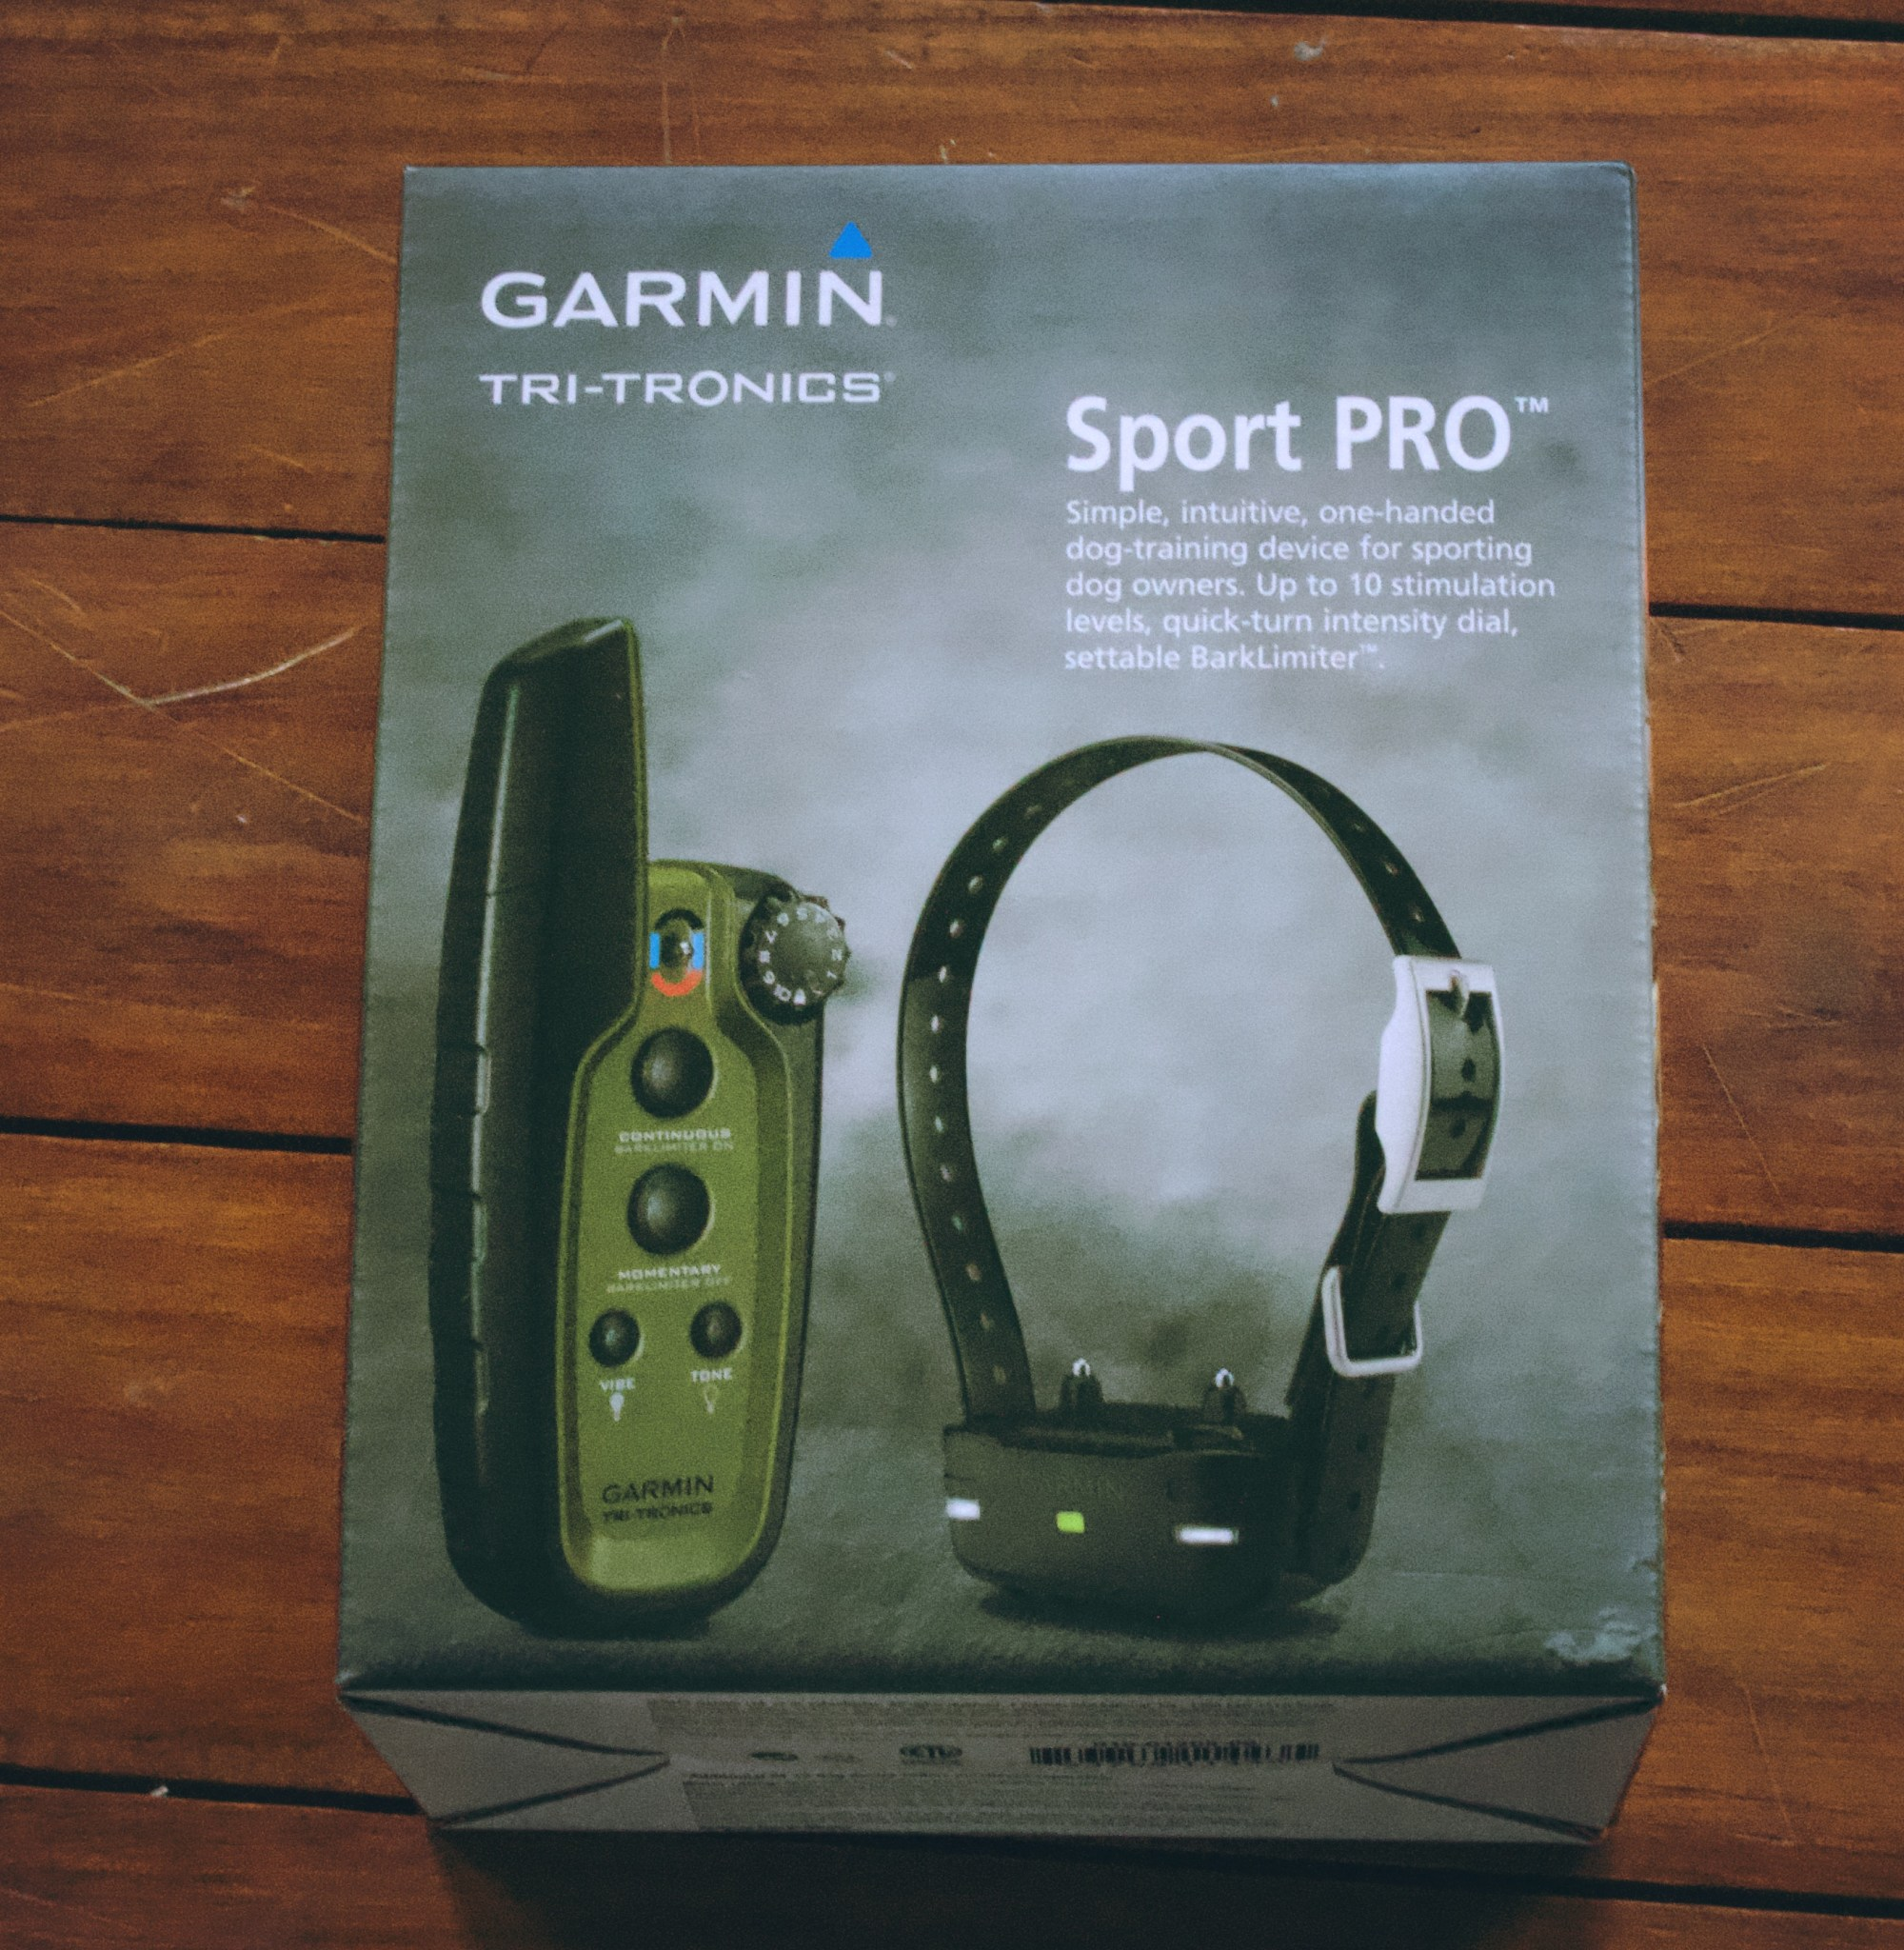 Photo of garmin sport pro box